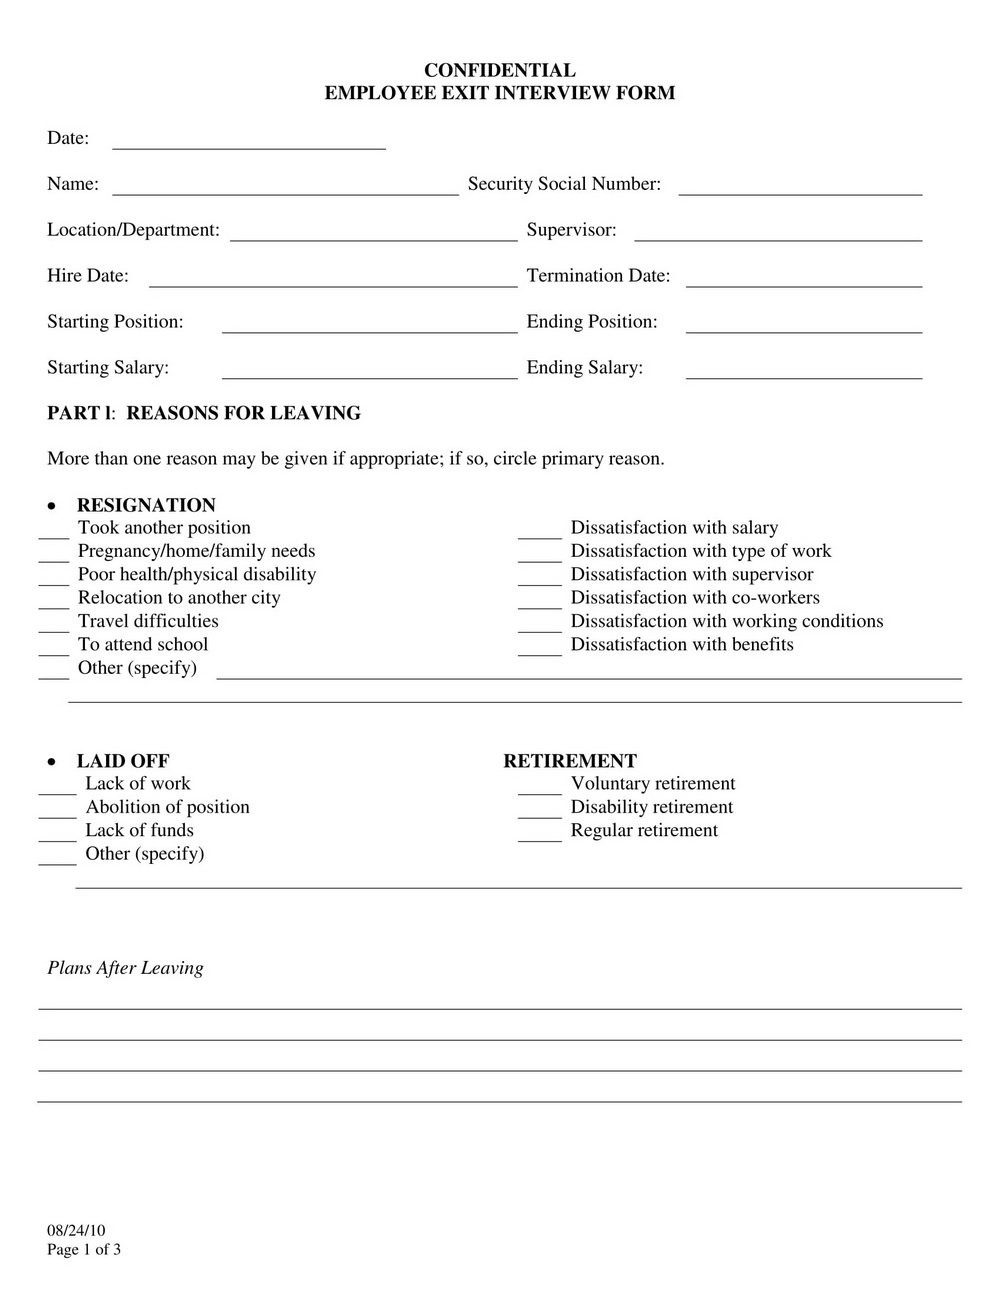 Hr Exit Interview Form